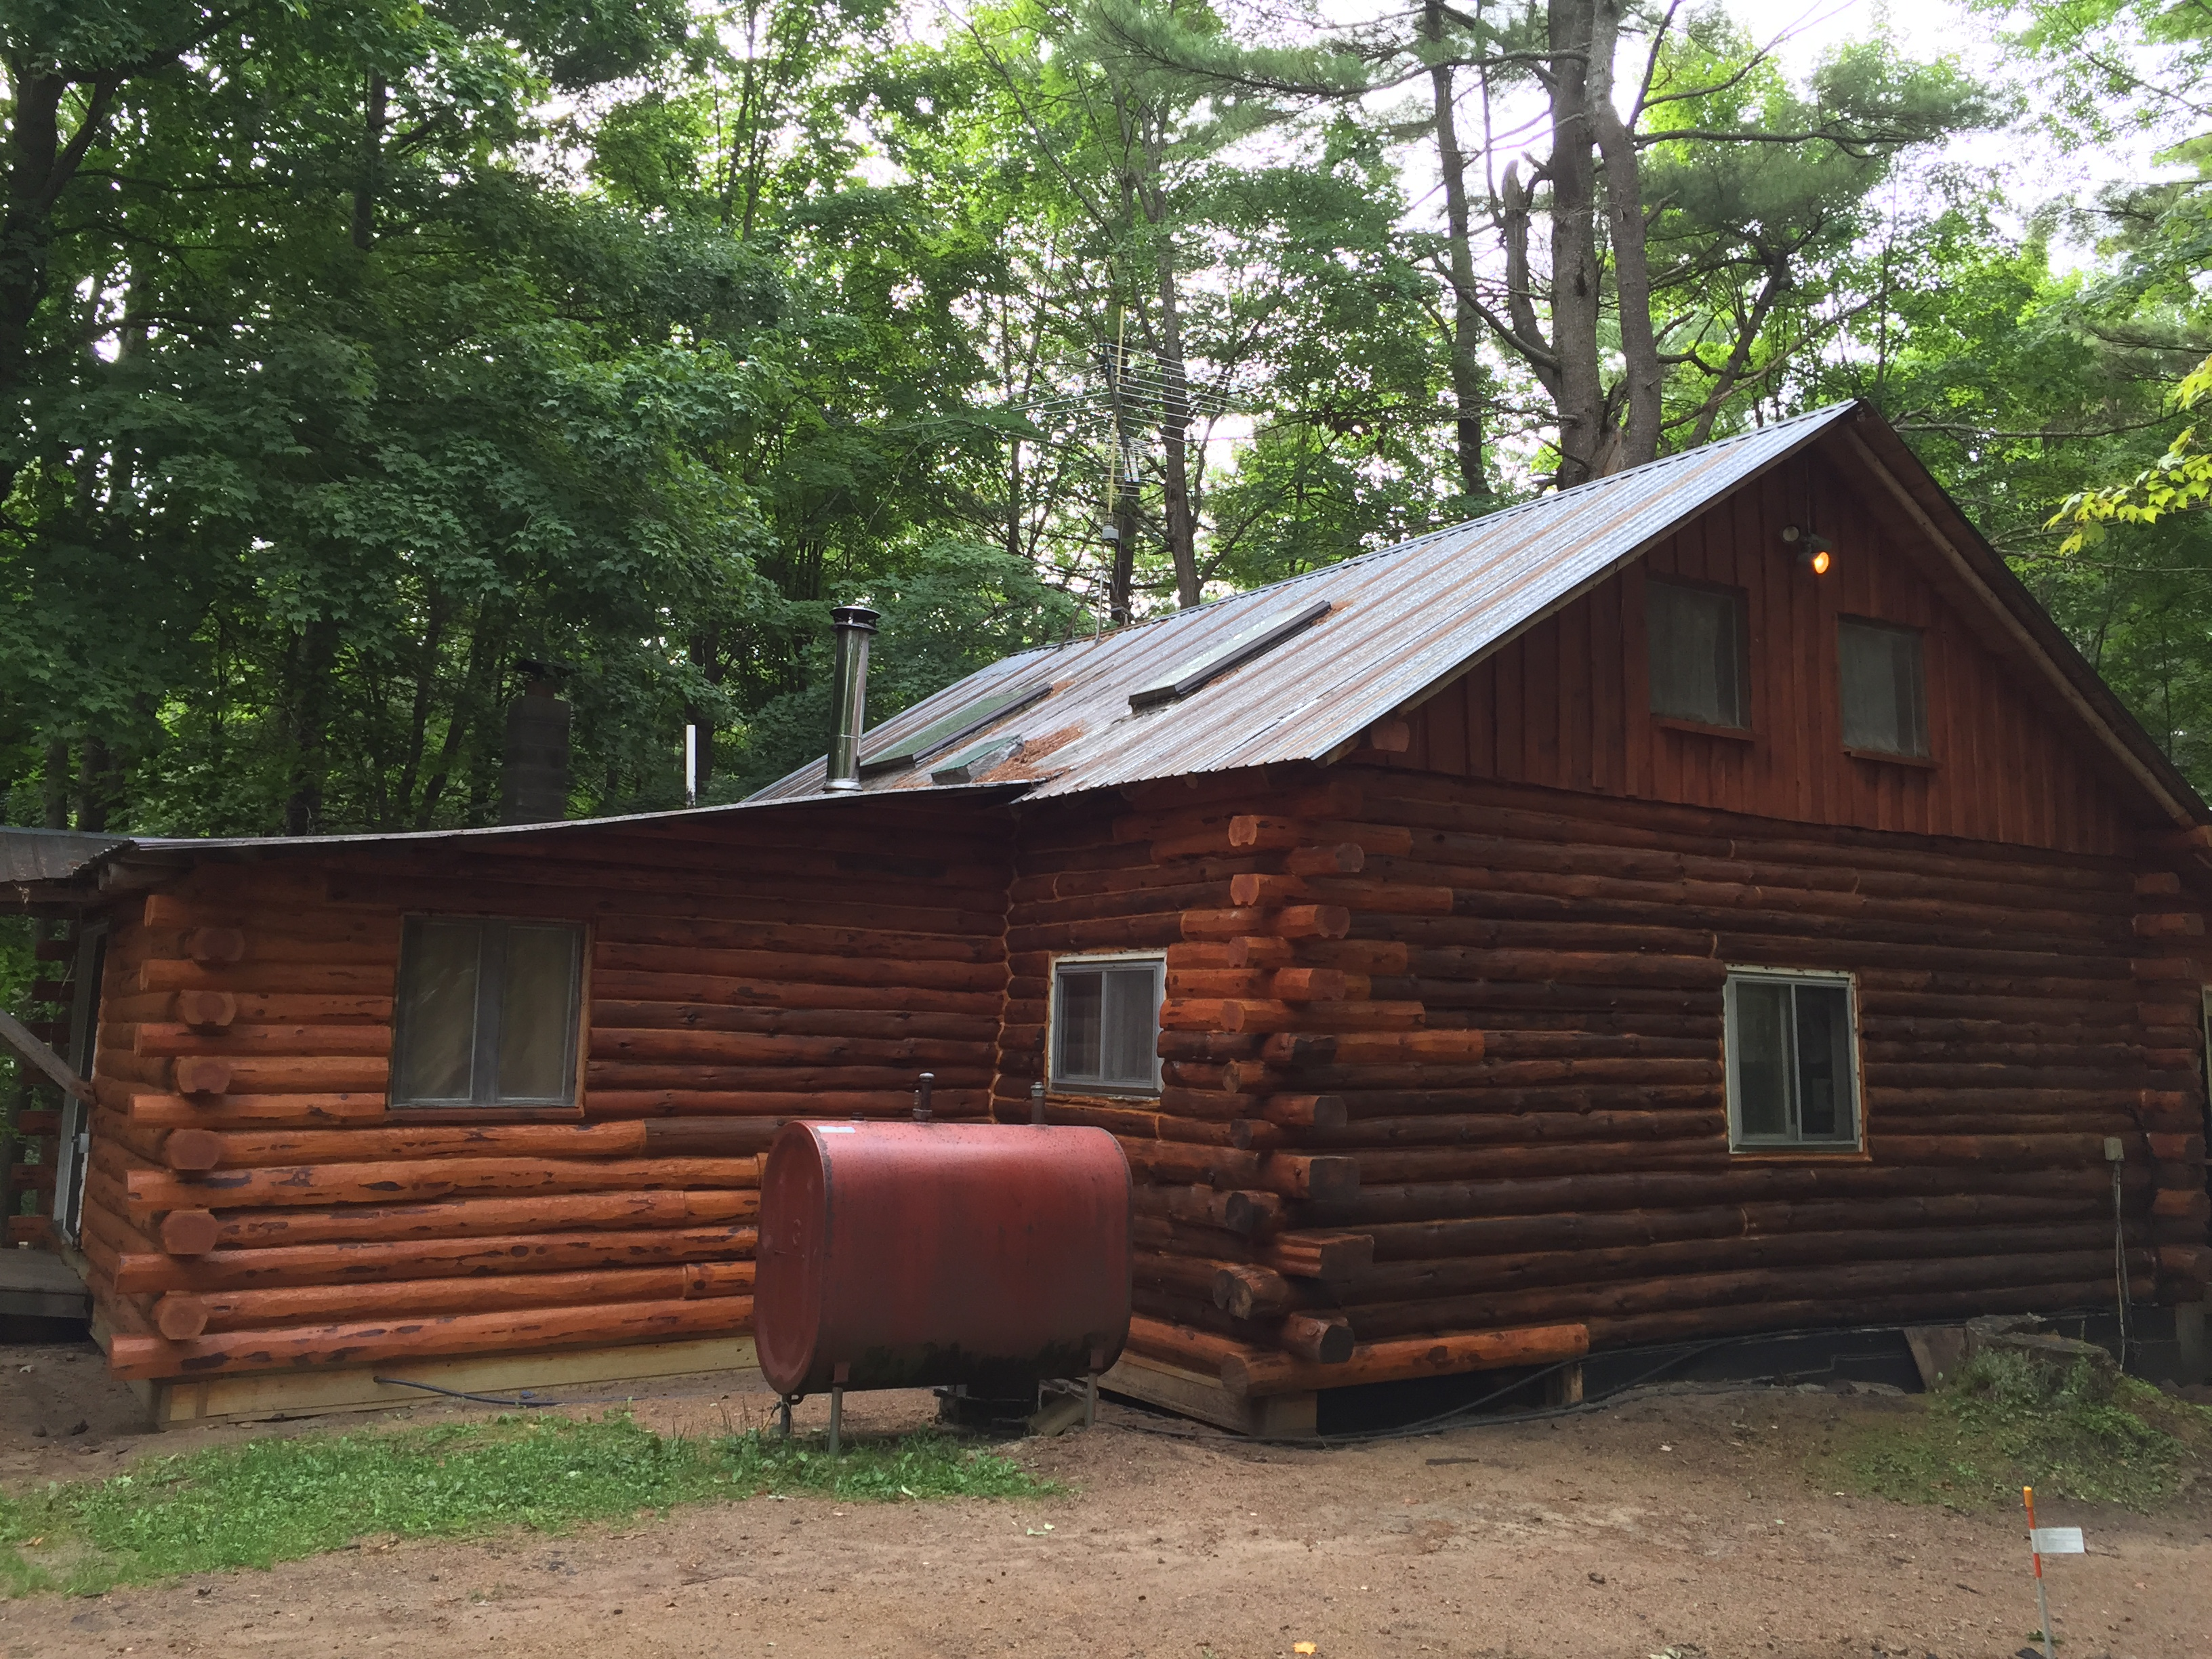 ny rent cabins cabin to onlinechange george info rental cottage own lake rentals a log in interior pulaski for